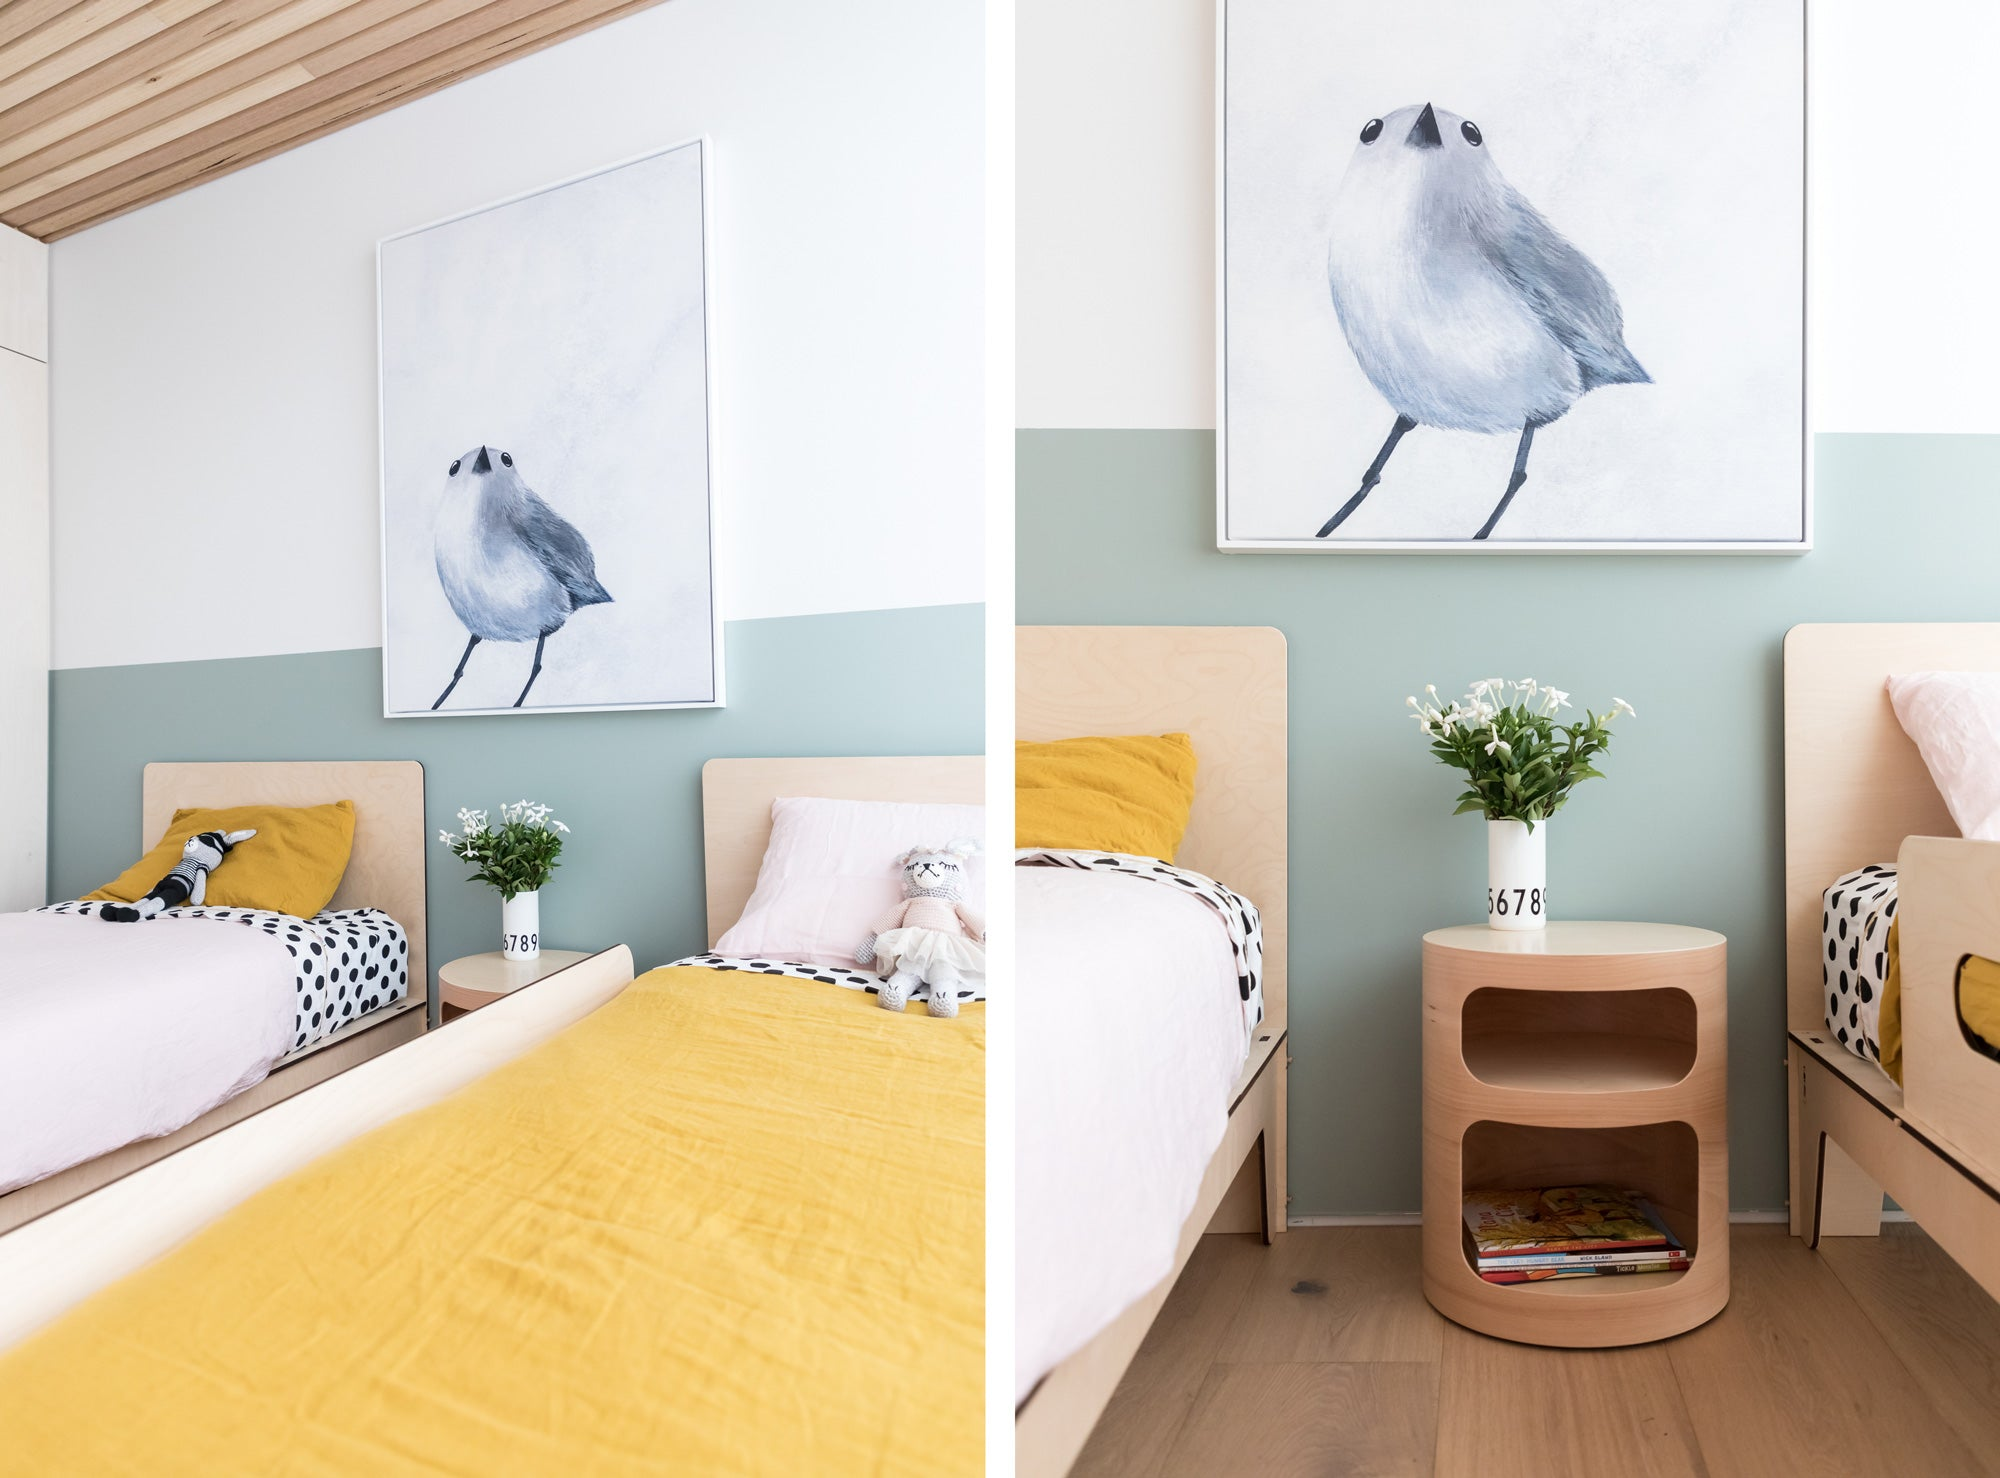 Image of a Children's Bedroom design by Hide and Sleep featuring the Singolo Single Bed